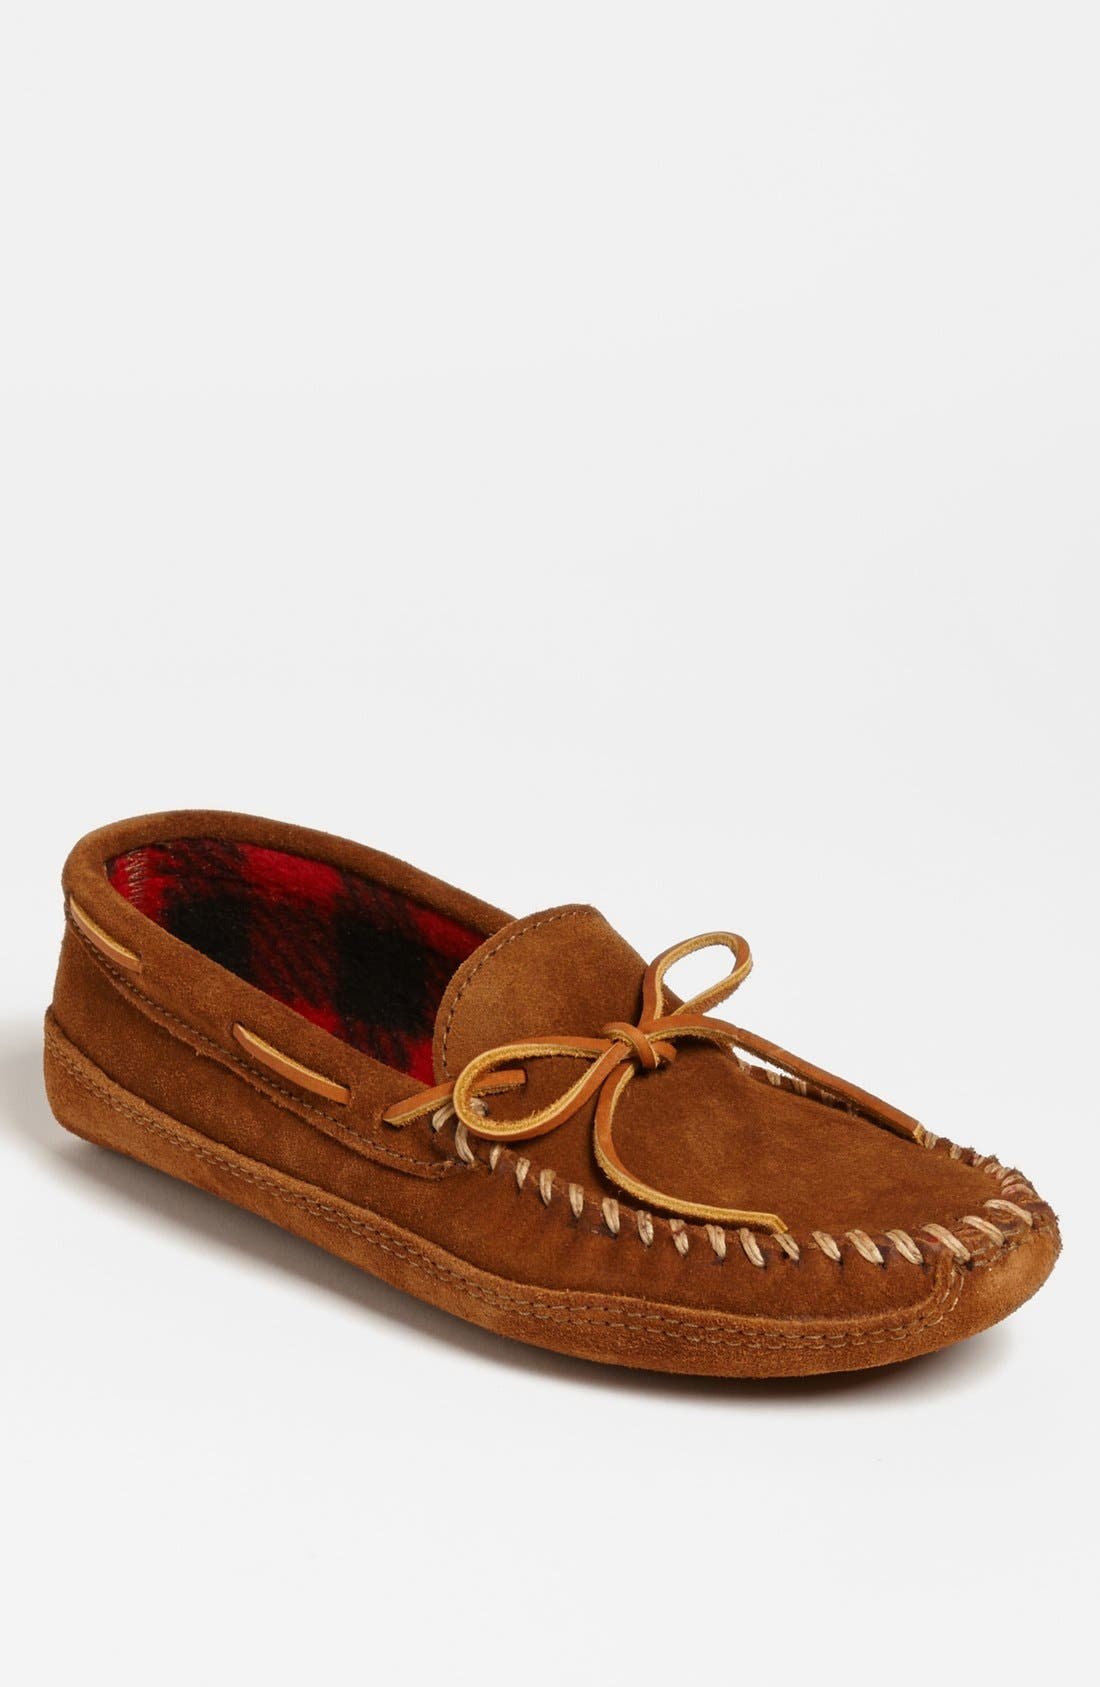 Main Image - Minnetonka Suede Moccasin